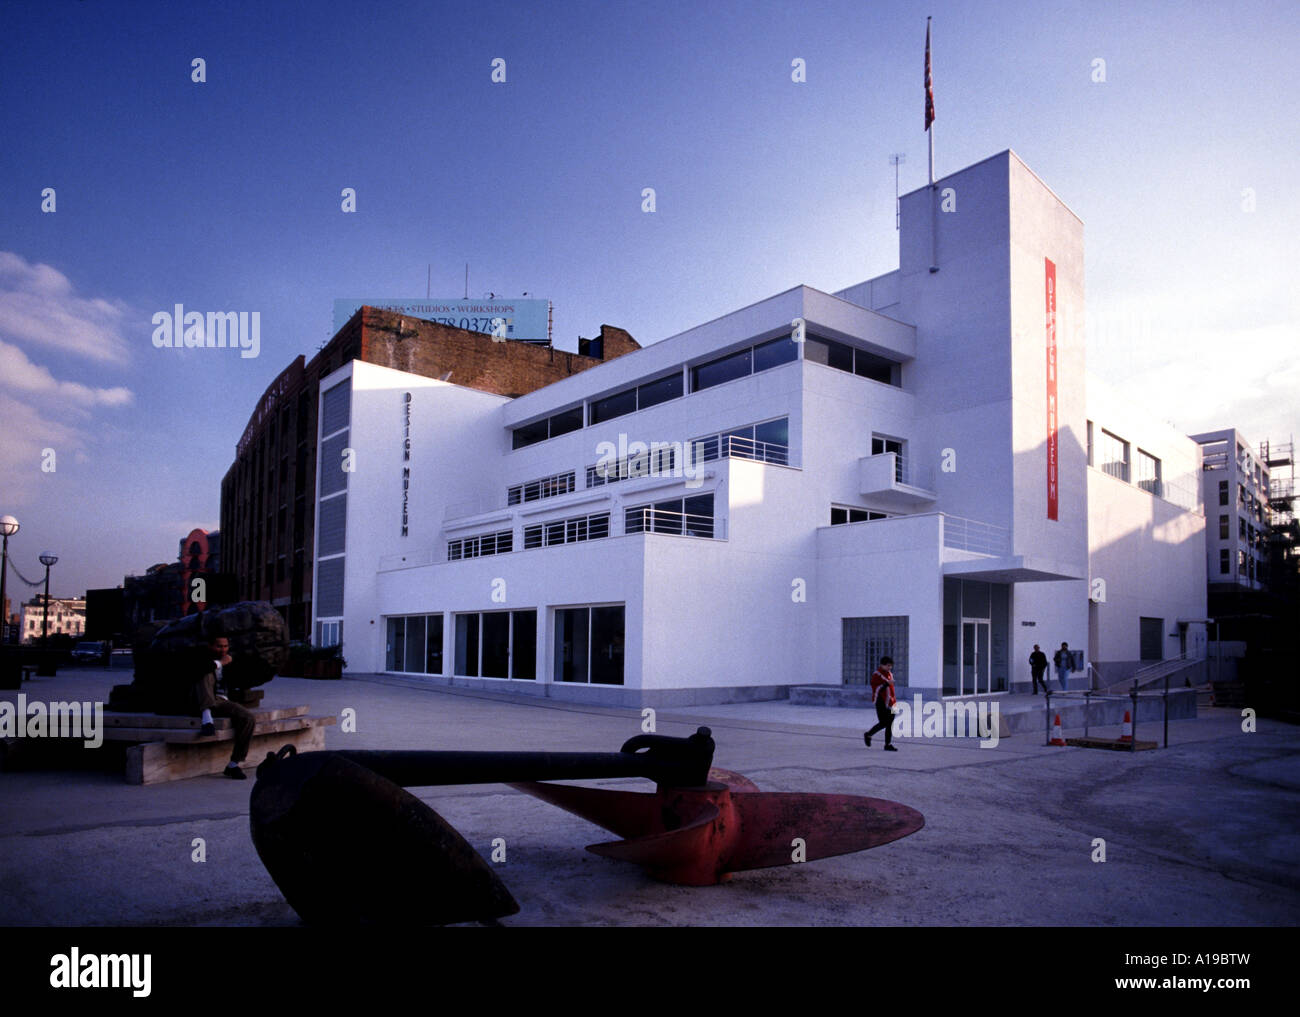 The design museum south bank london stock photo 10186584 alamy the design museum south bank london malvernweather Images